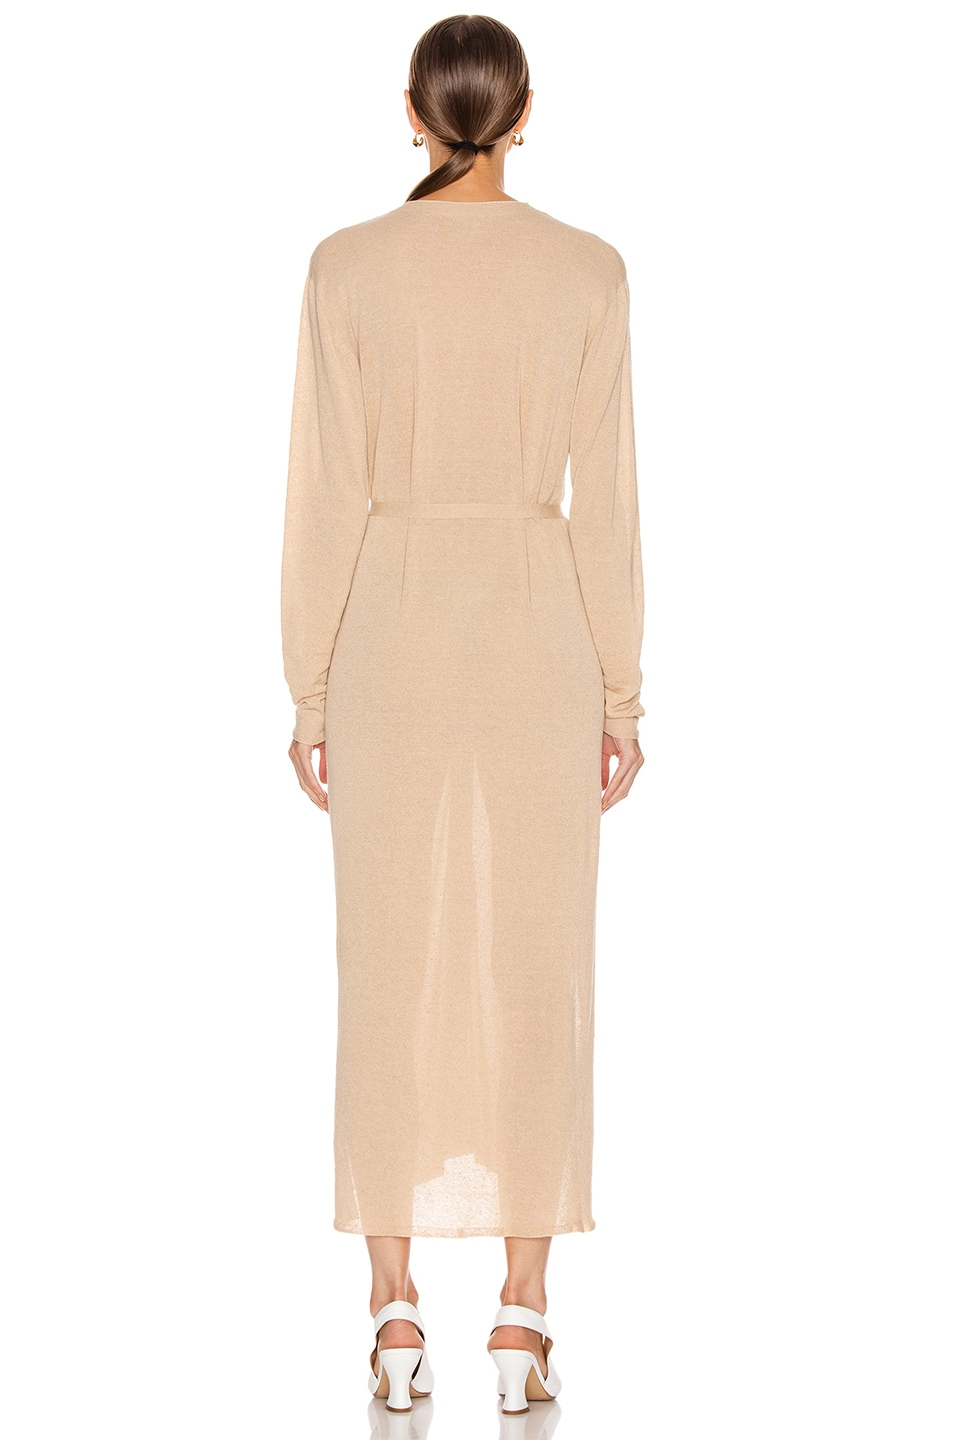 Image 3 of Lemaire Cardigan Dress in Ginger Beige